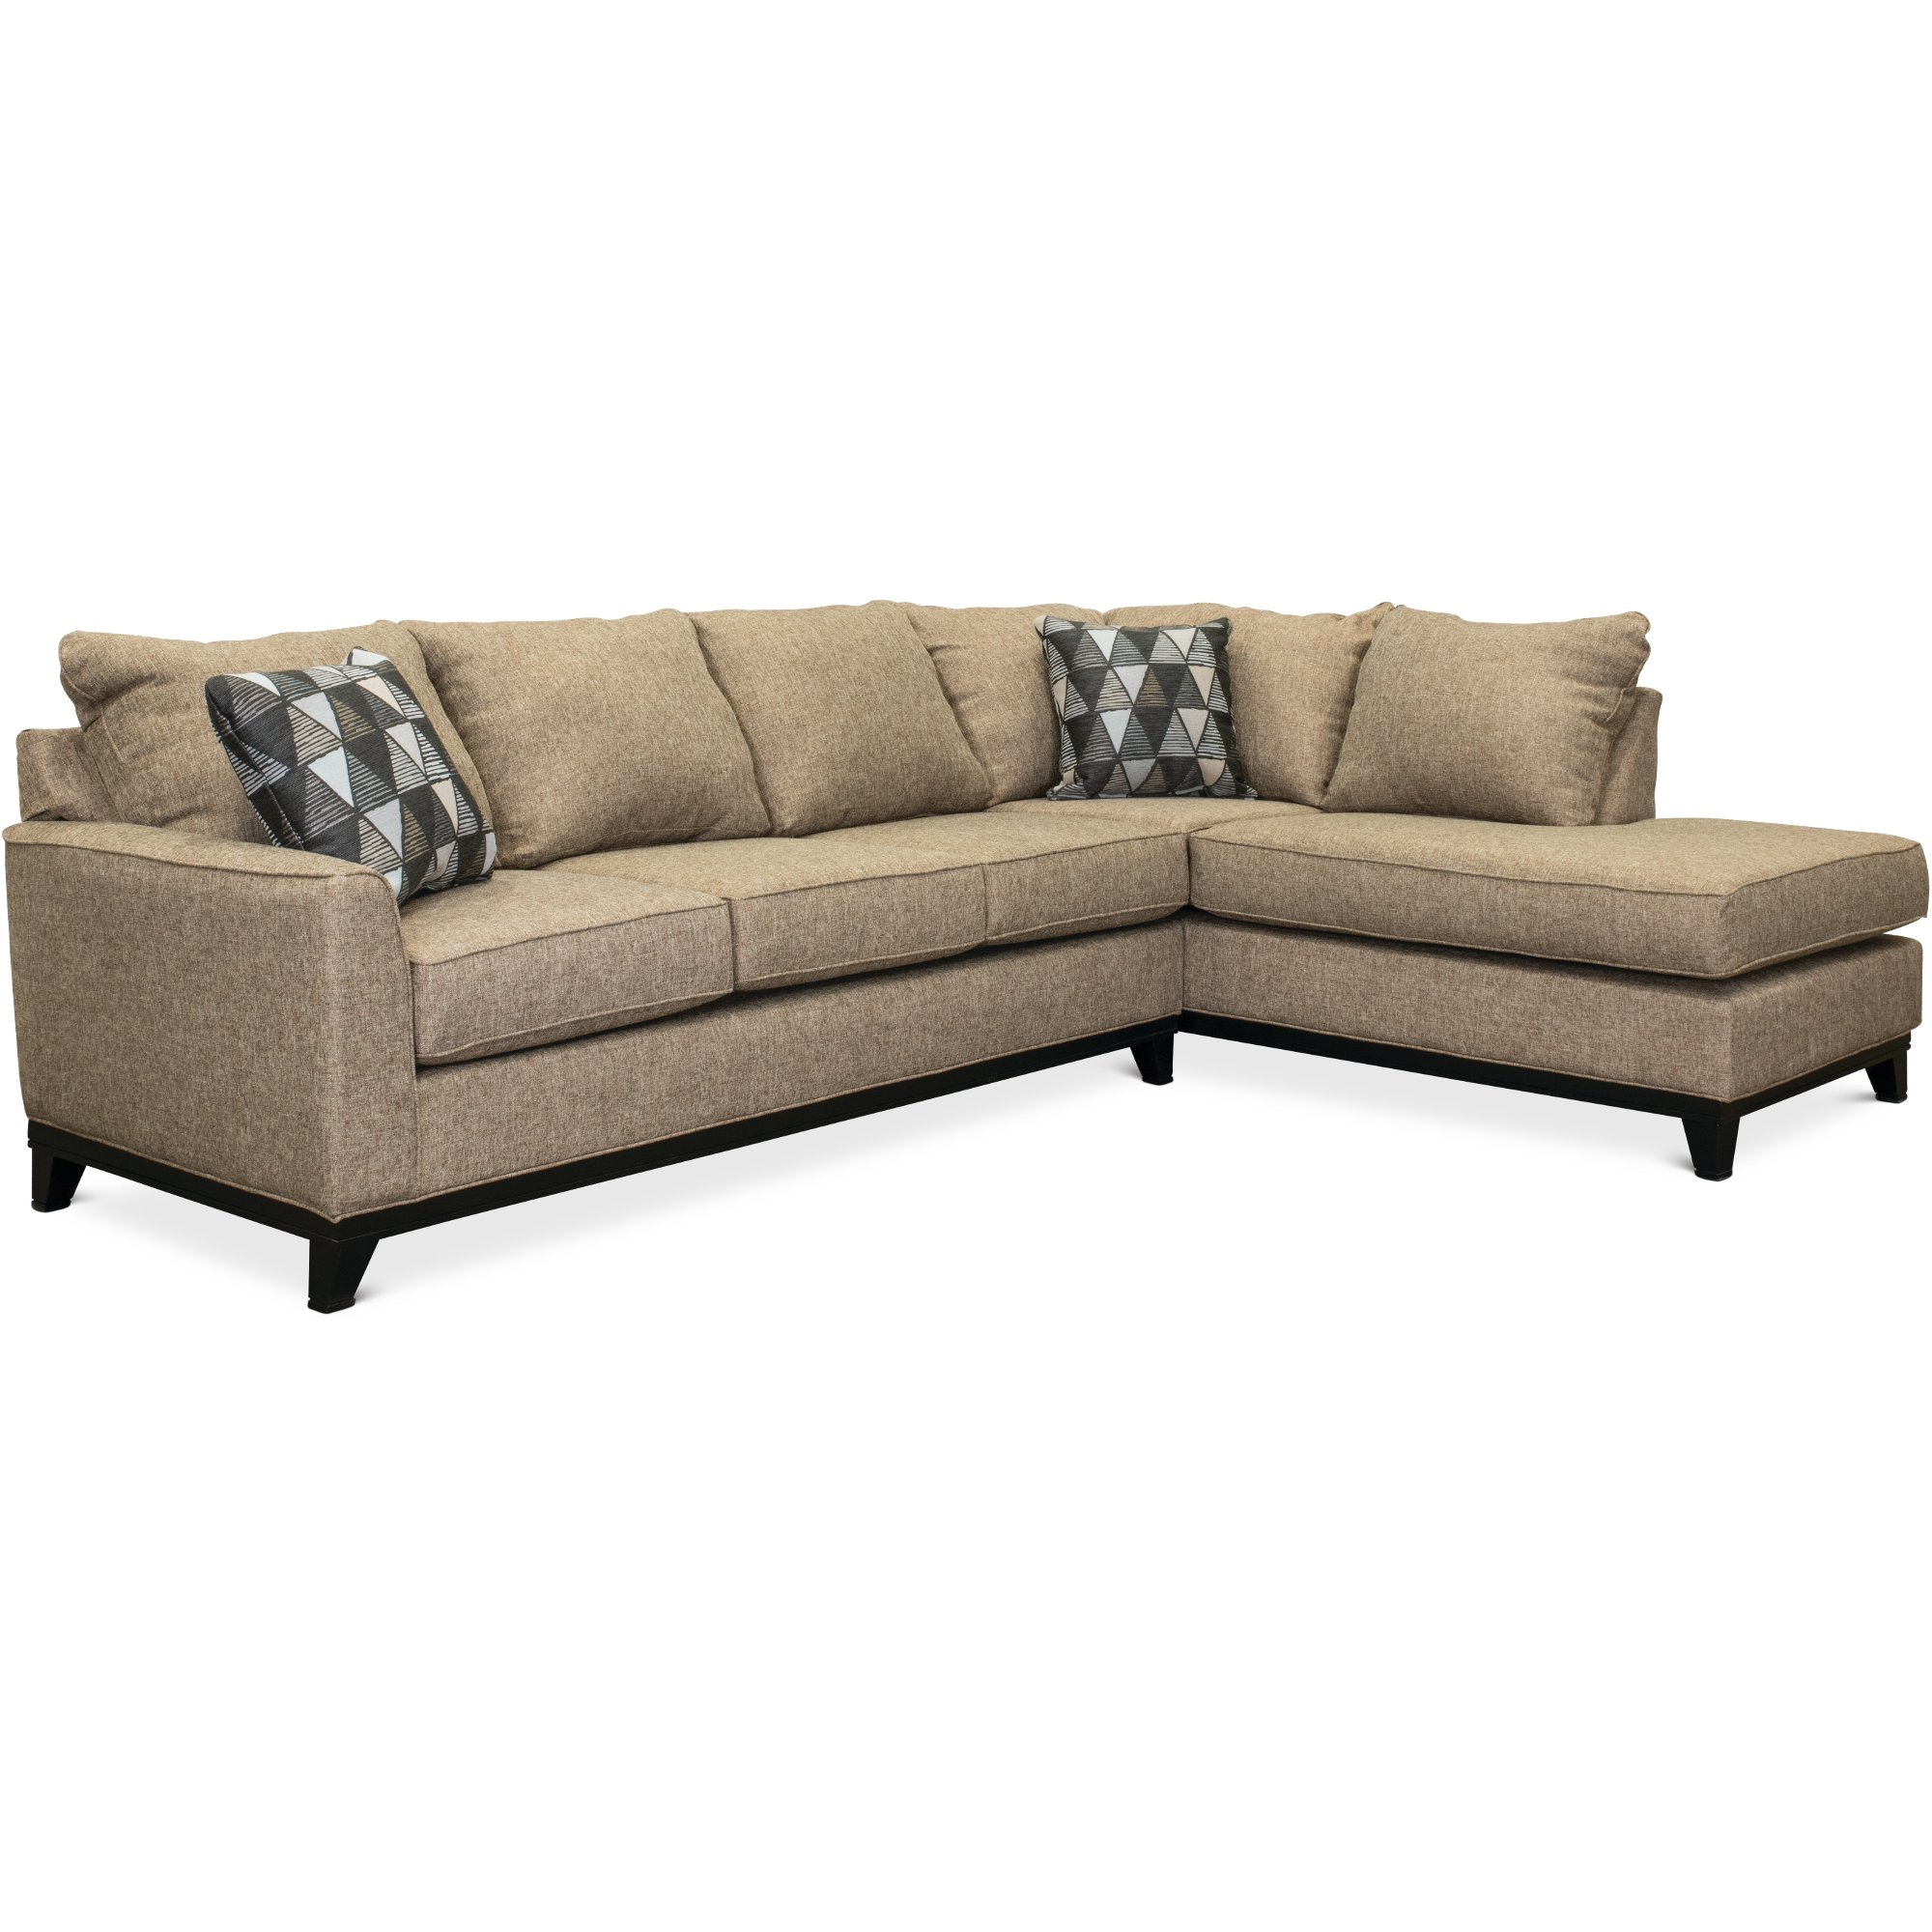 klaussner loomis sectional sofa benchcraft furniture leather 2 piece cheap baci living room